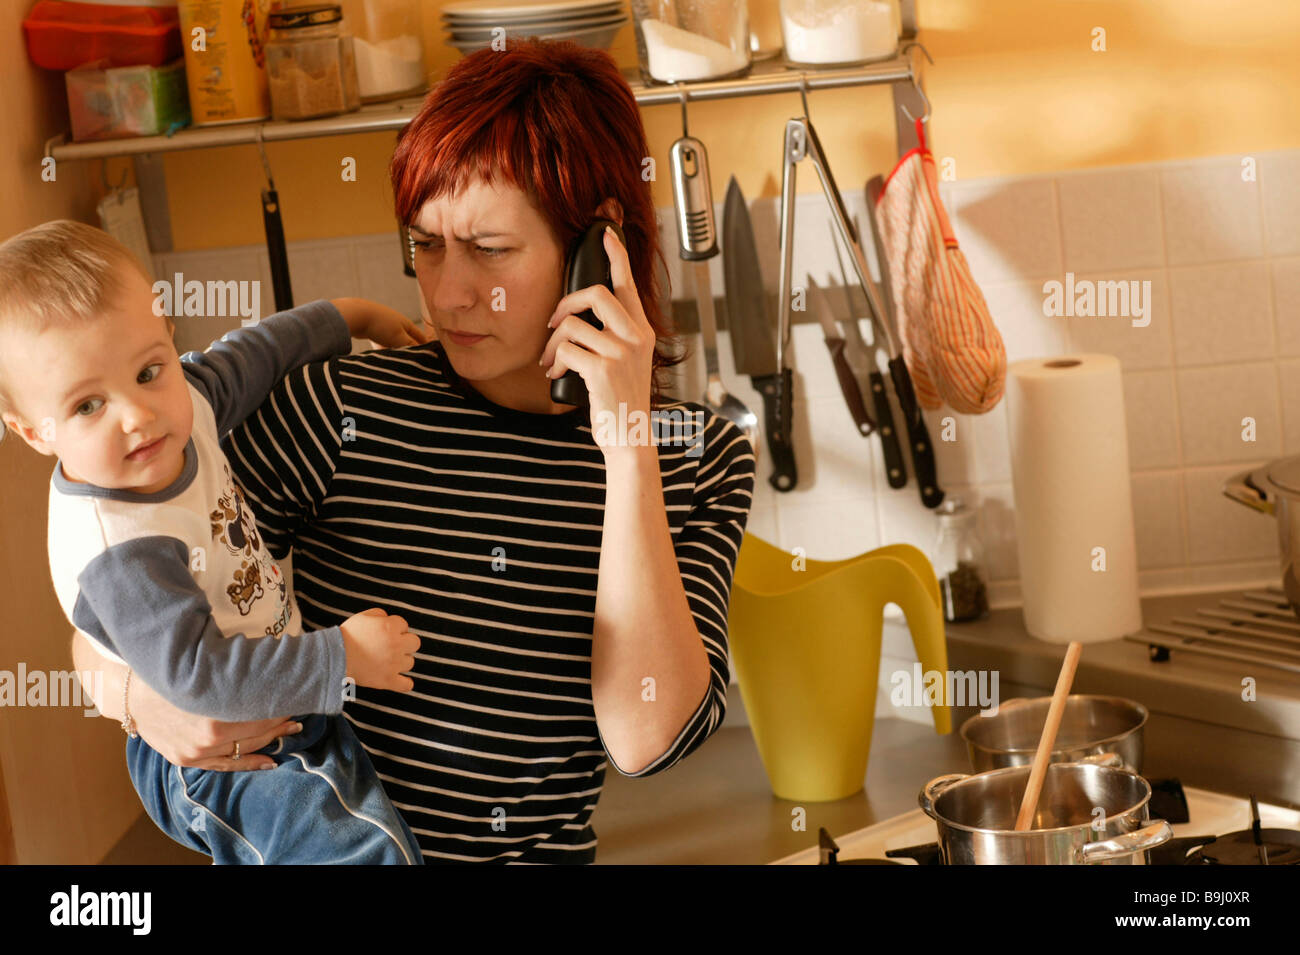 Mother with child, stress - Stock Image